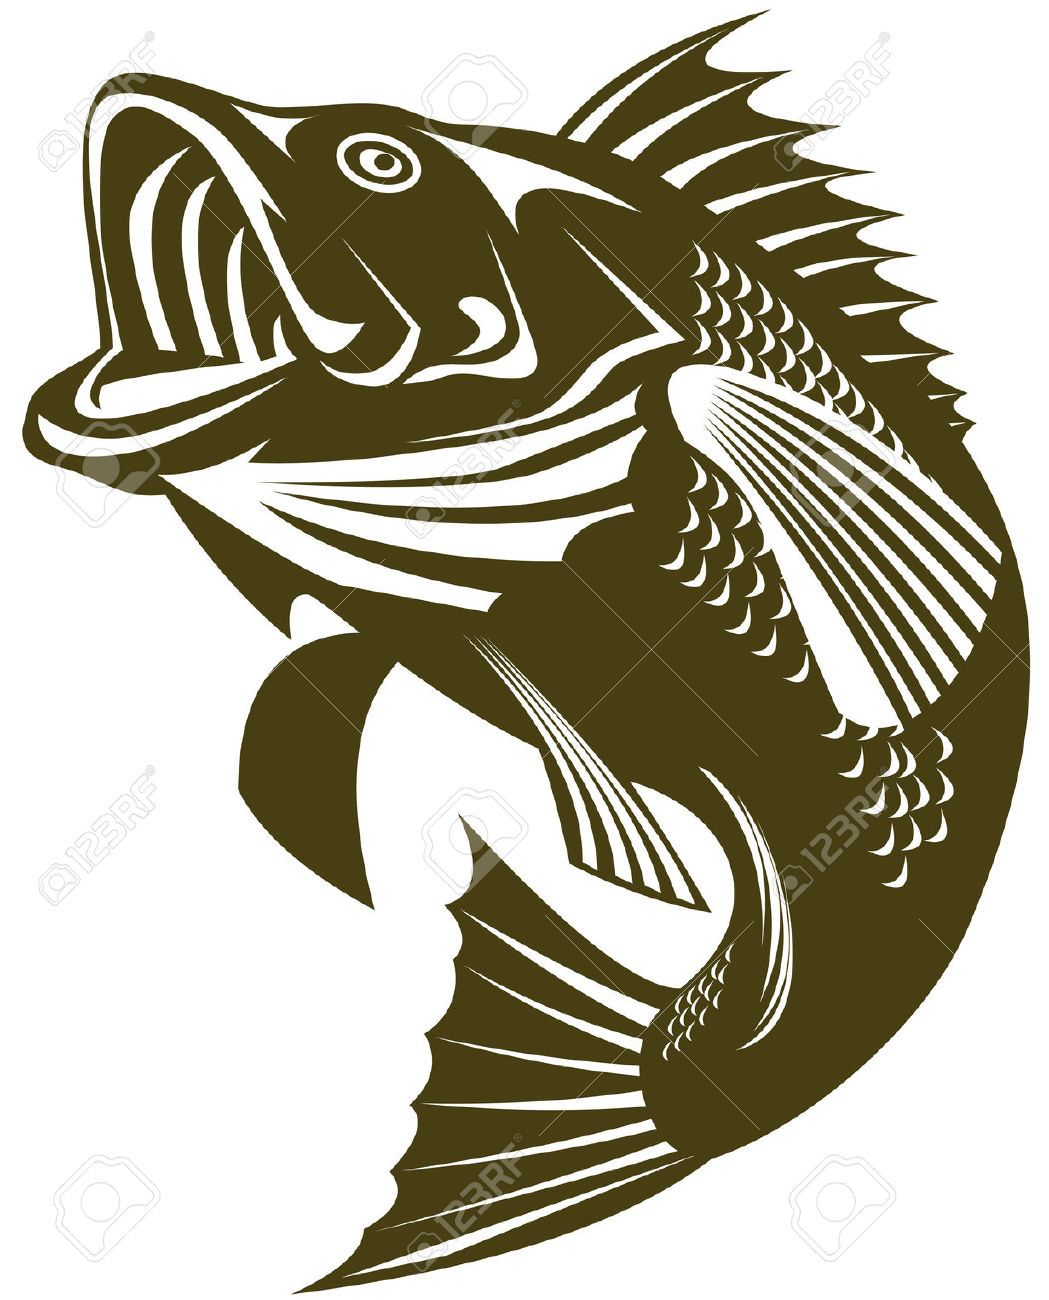 Largemouth Bass Cliparts Stock Vector And Royalty Free Largemouth - Cool custom vinyl decals for carsfish hook die cut vinyl decal pv projects pinterest fish